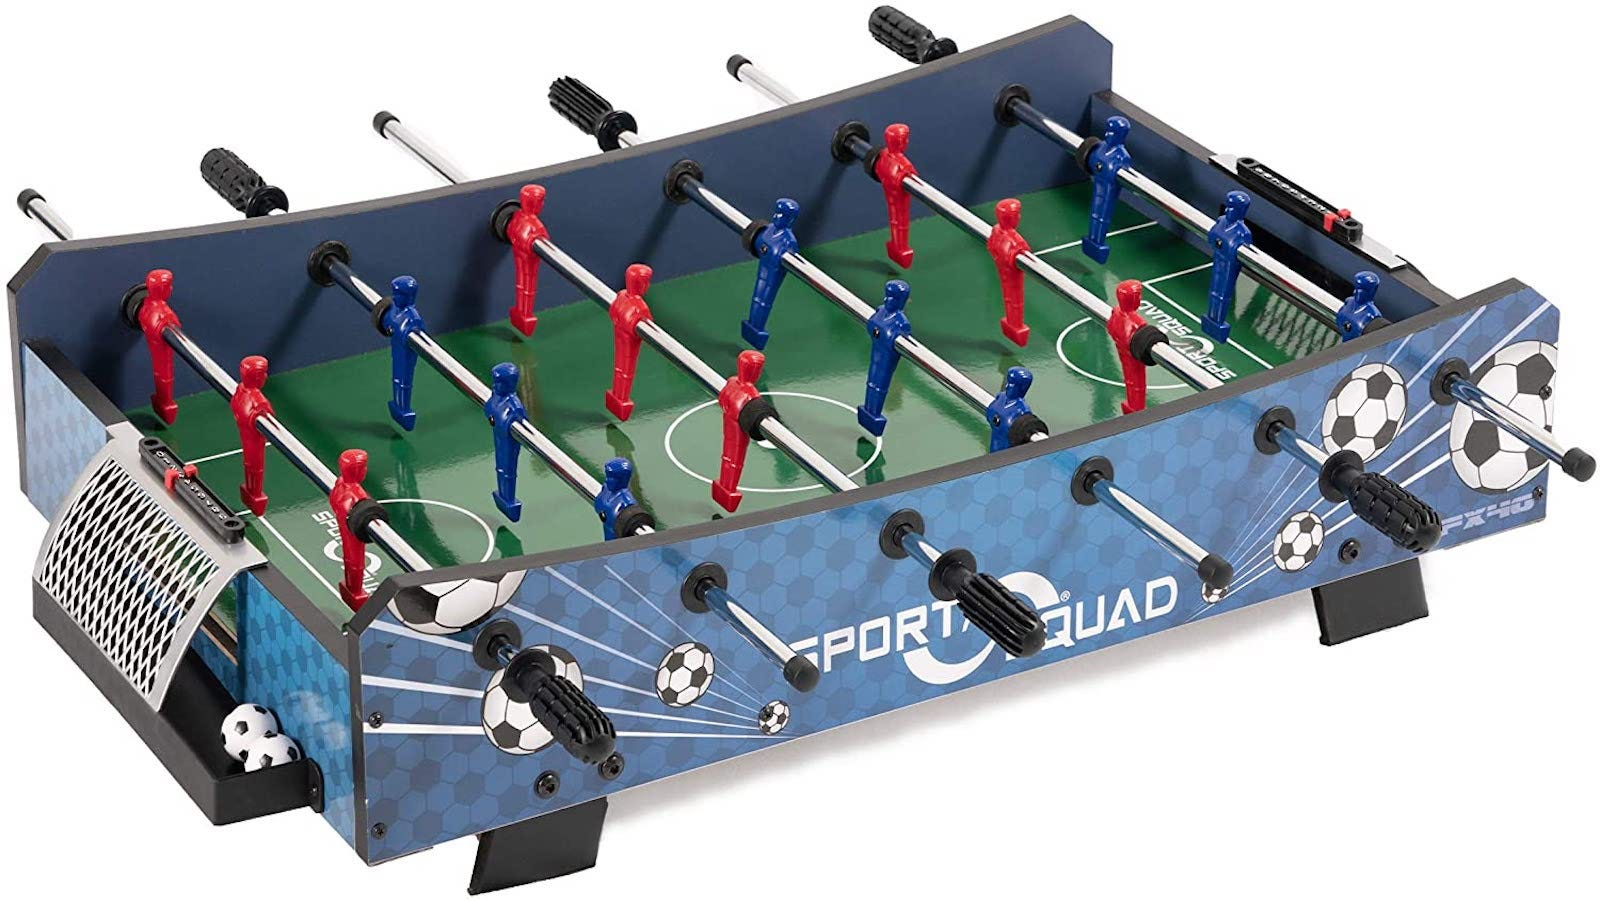 blue tabletop foosball table with a soccer ball pattern and red and blue players